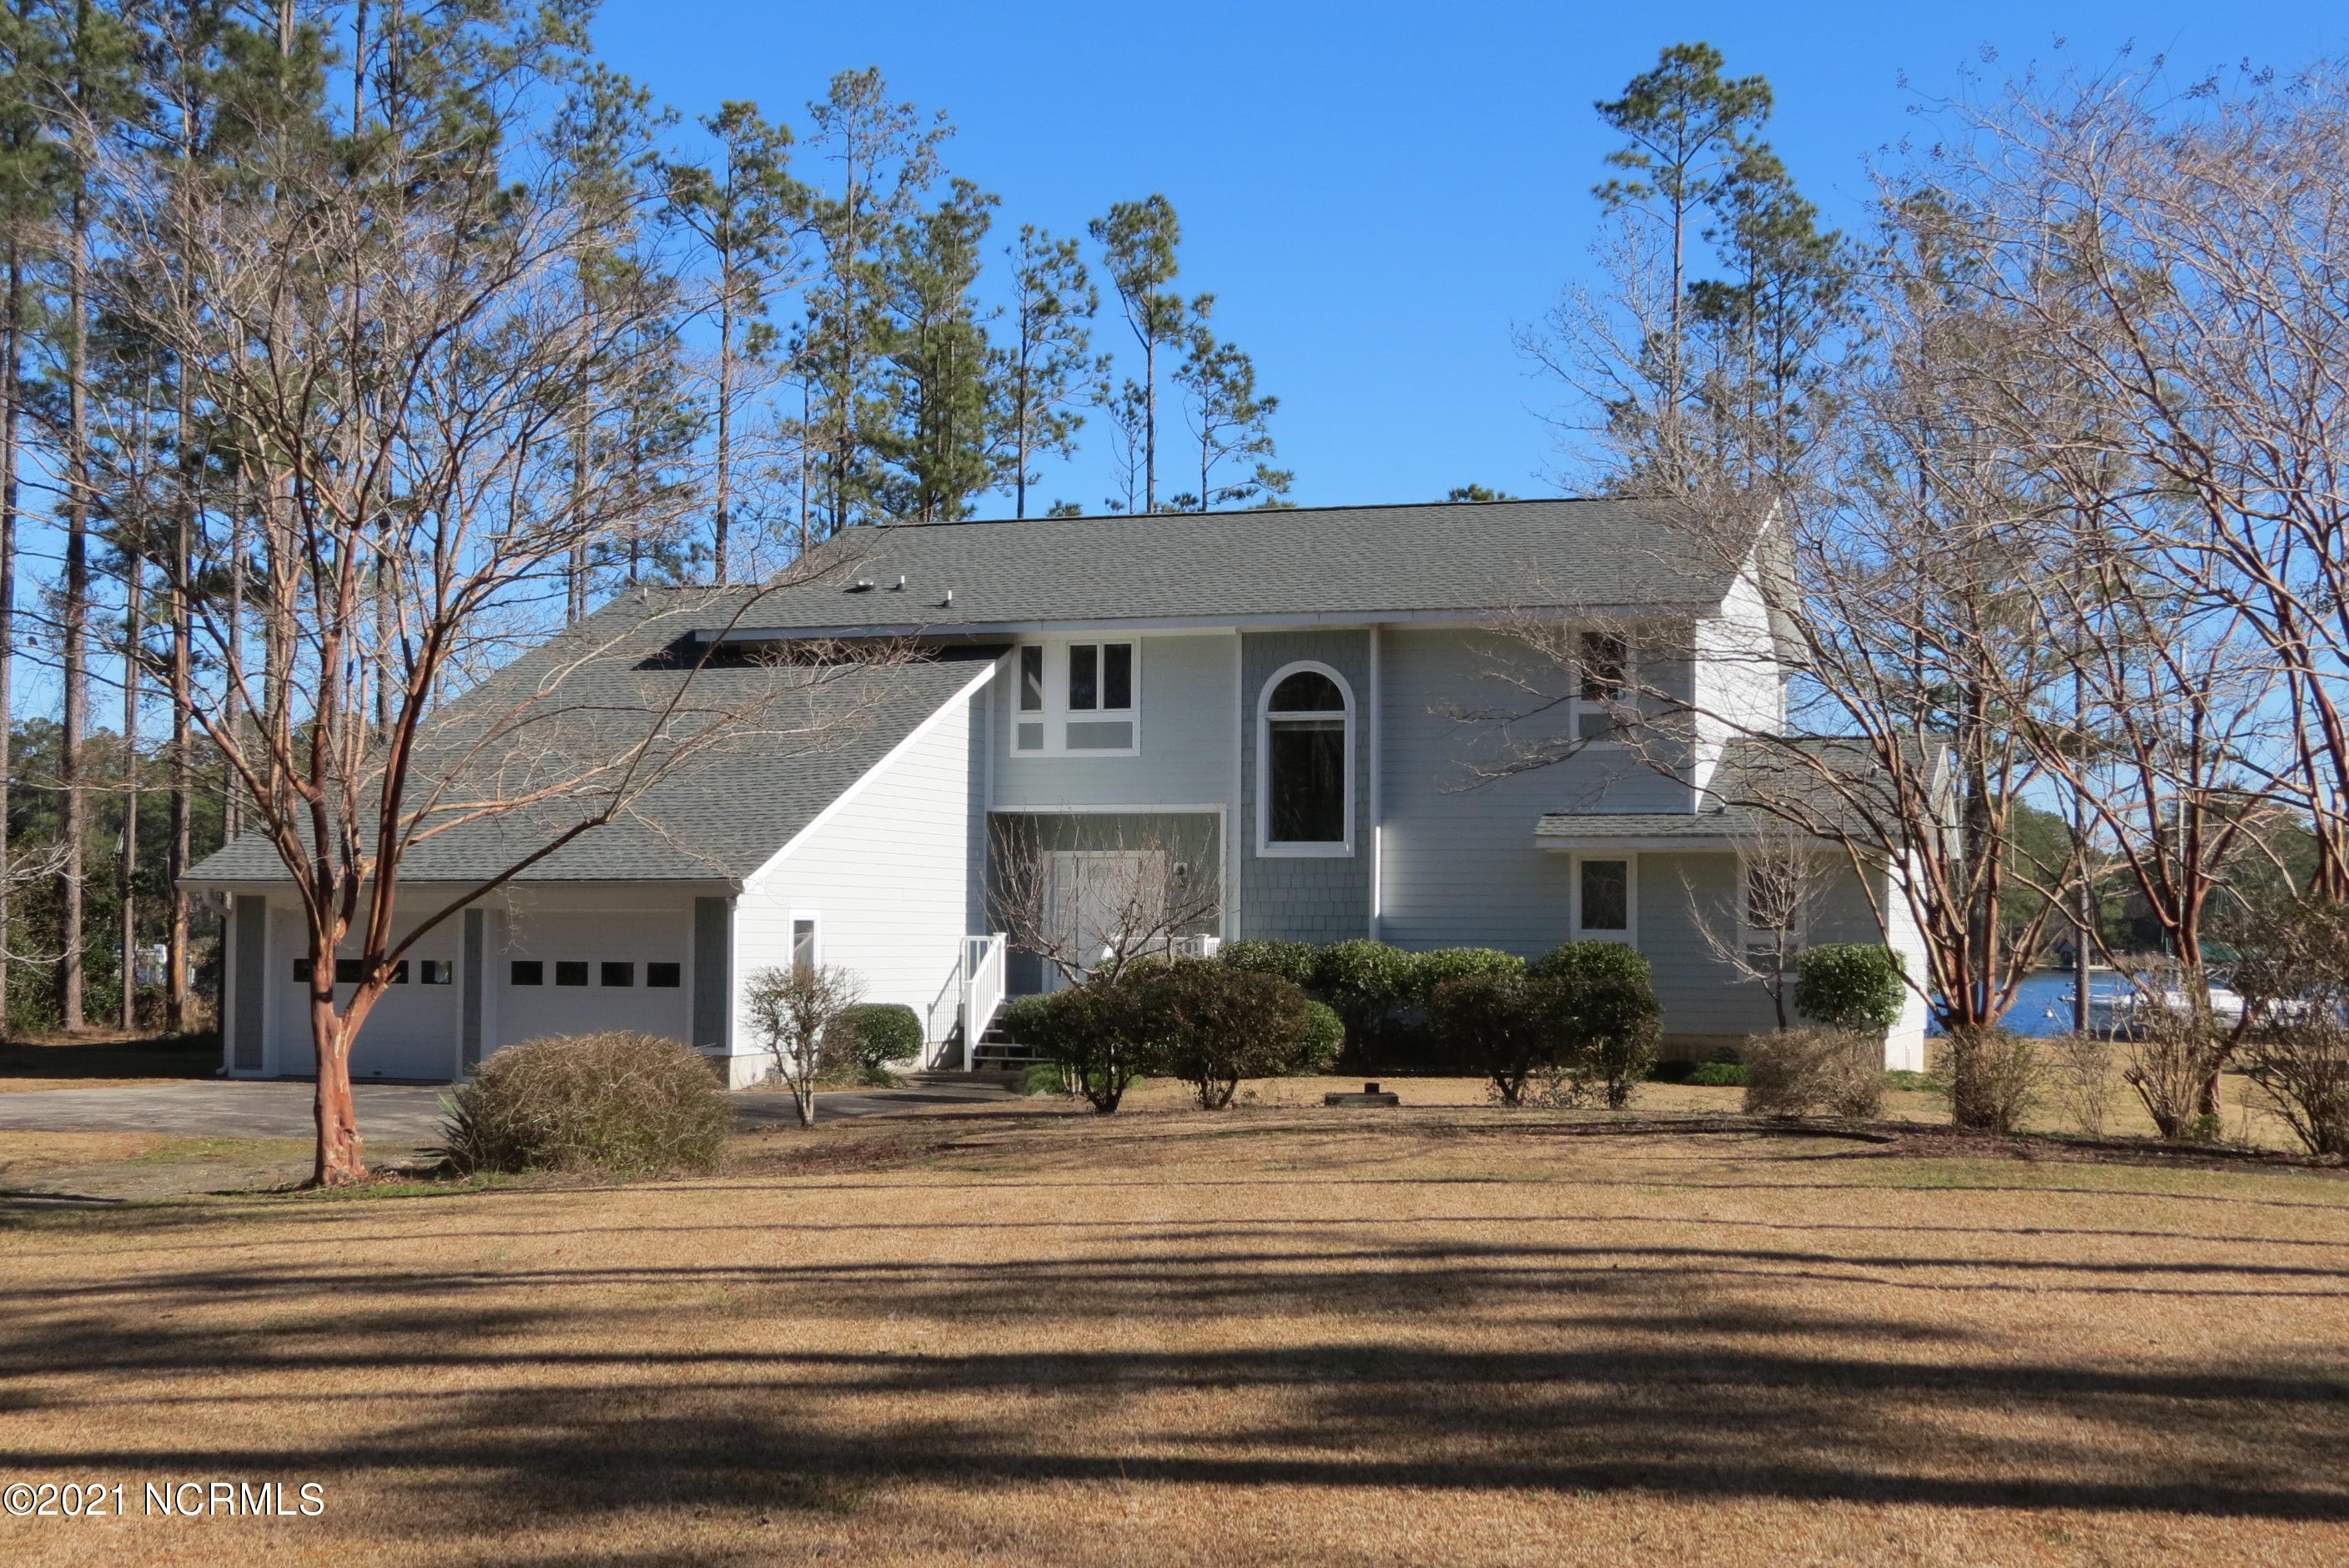 34 Fork Point Road, Oriental, North Carolina 28571, 3 Bedrooms Bedrooms, 11 Rooms Rooms,2 BathroomsBathrooms,Single family residence,For sale,Fork Point,100250268